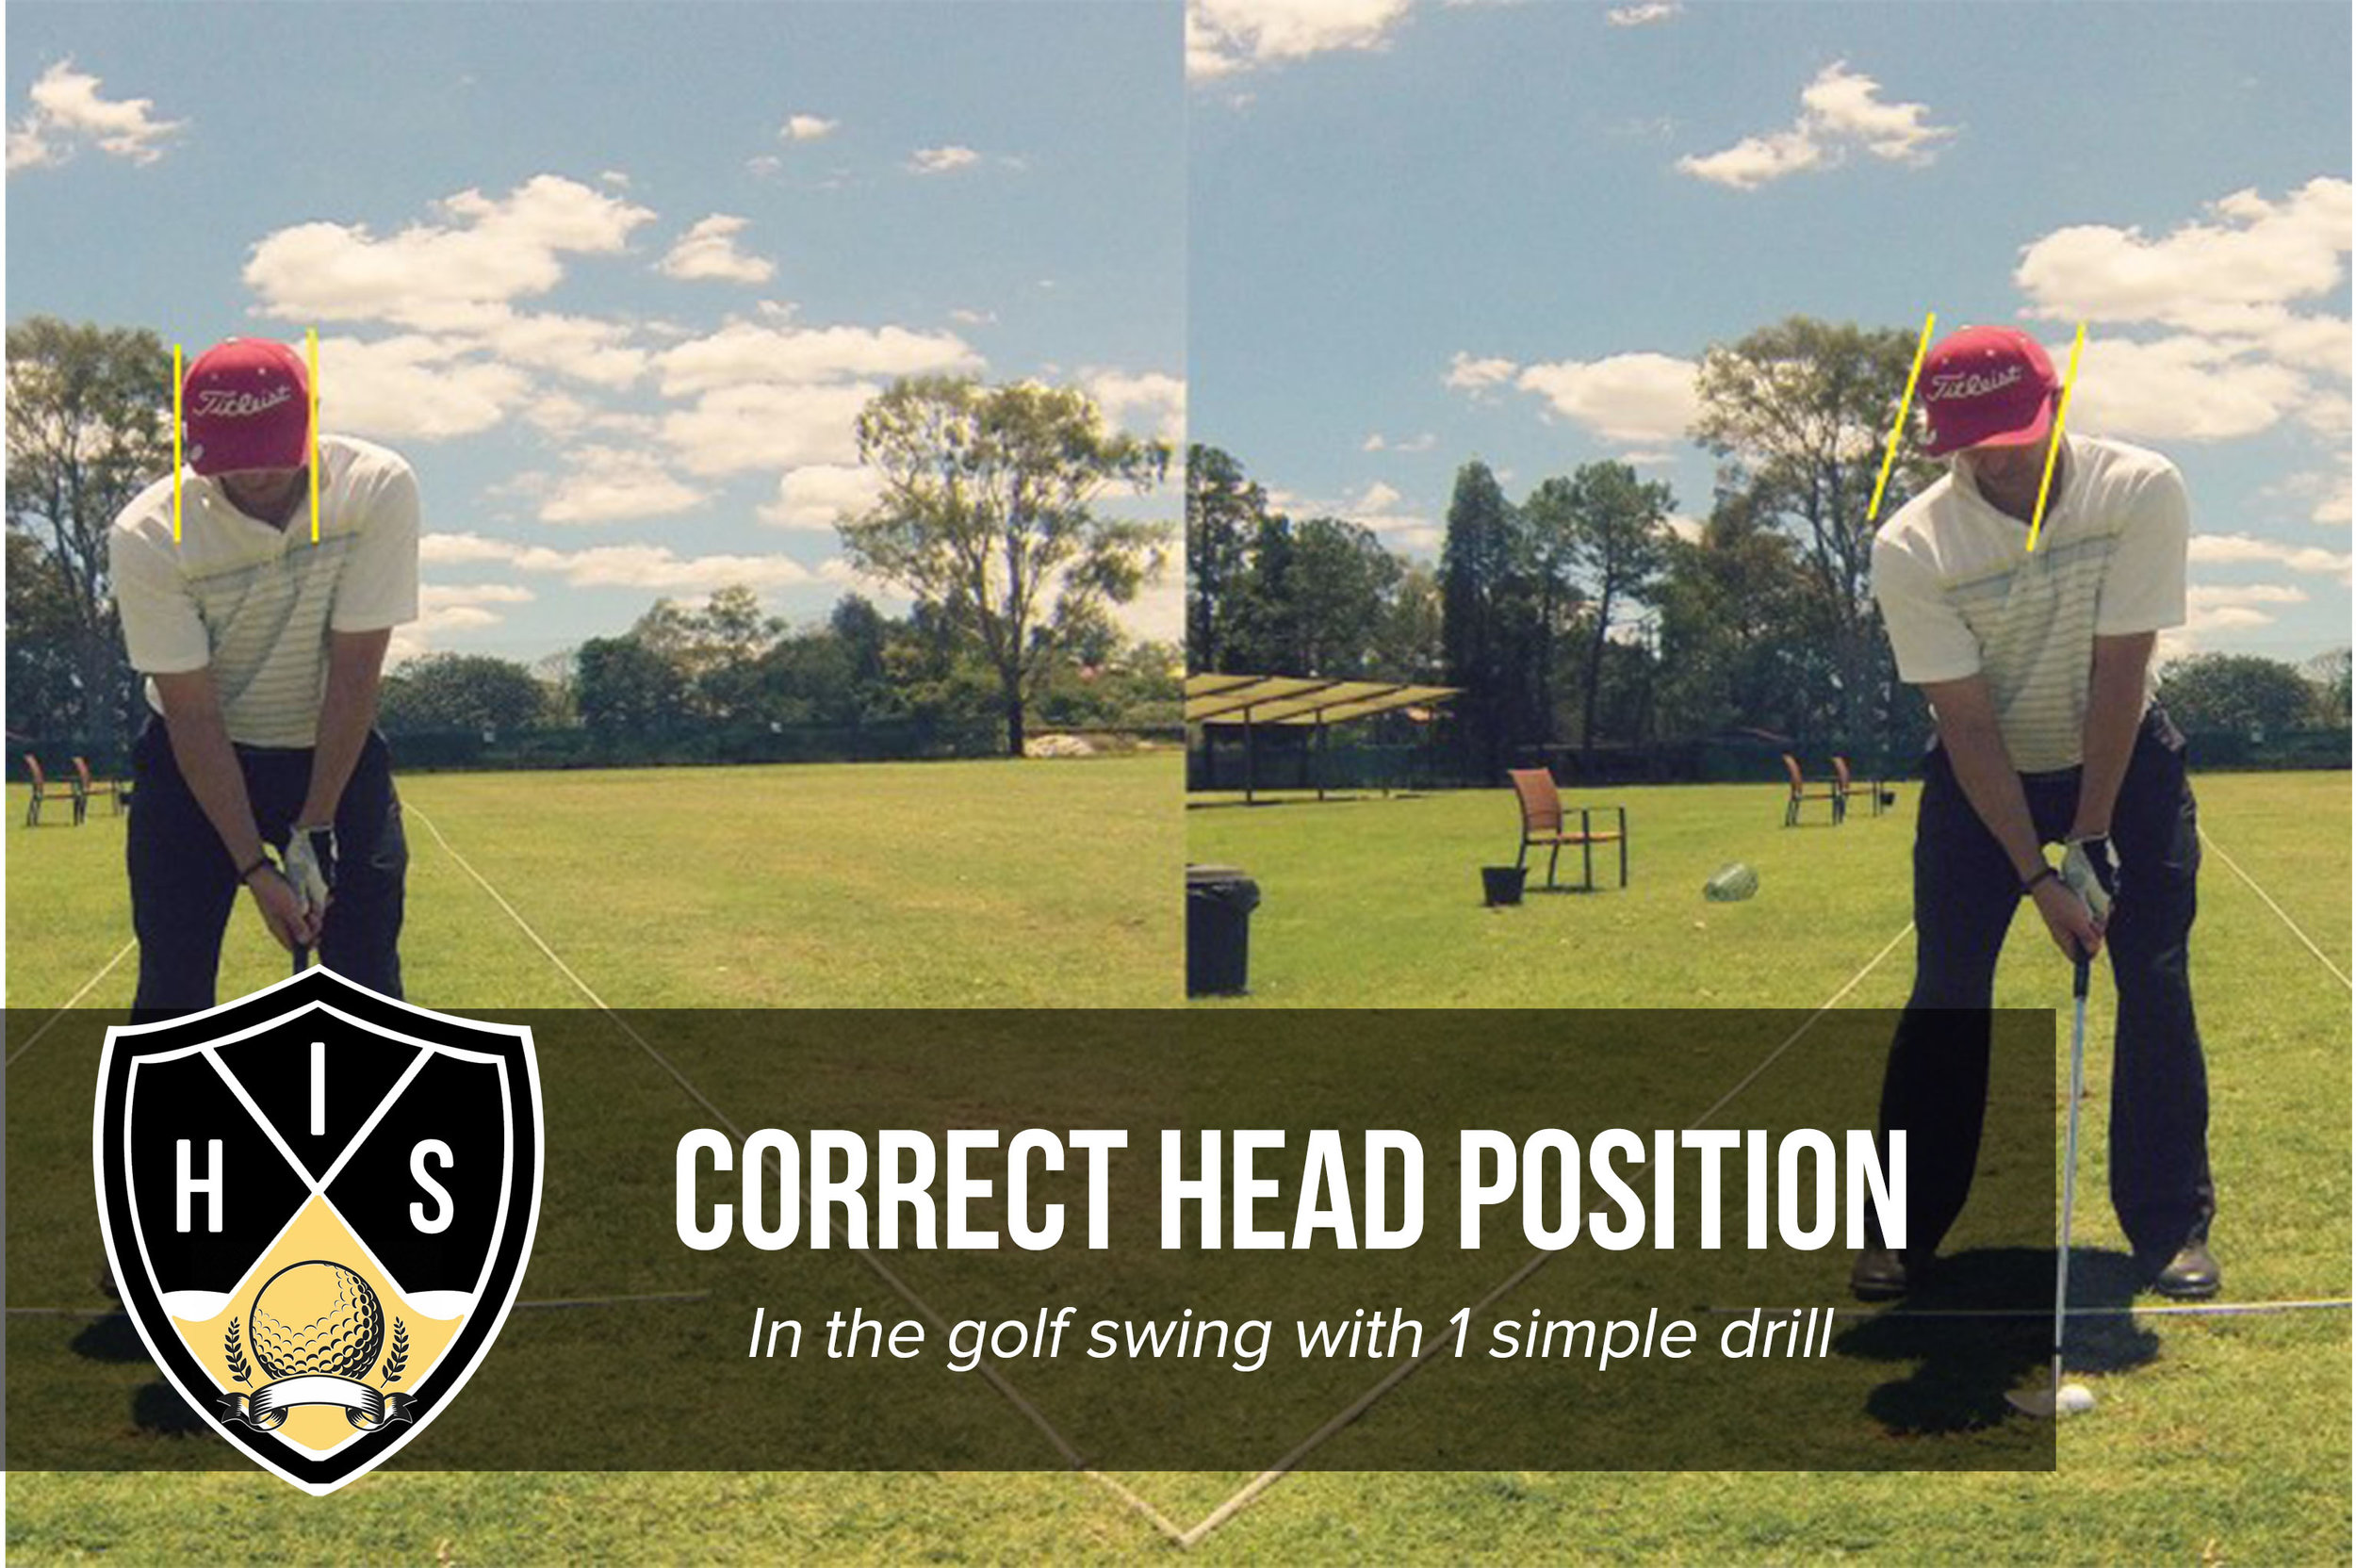 Head Position in the Golf Swing